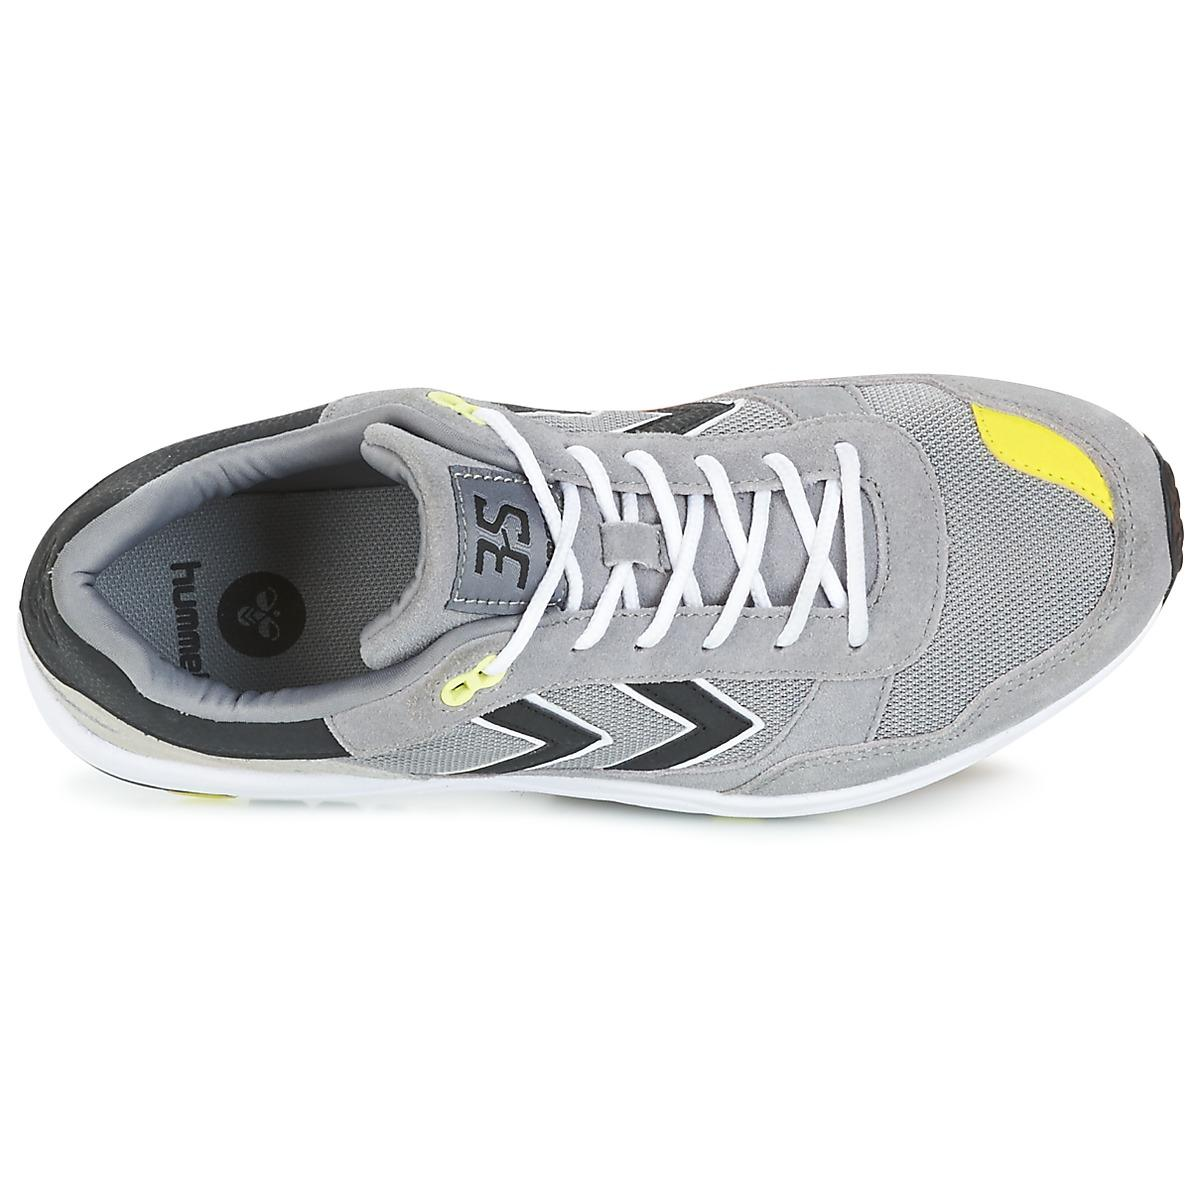 Hummel 3s Sport Shoes (trainers) in Grey (Grey) - Save 26%